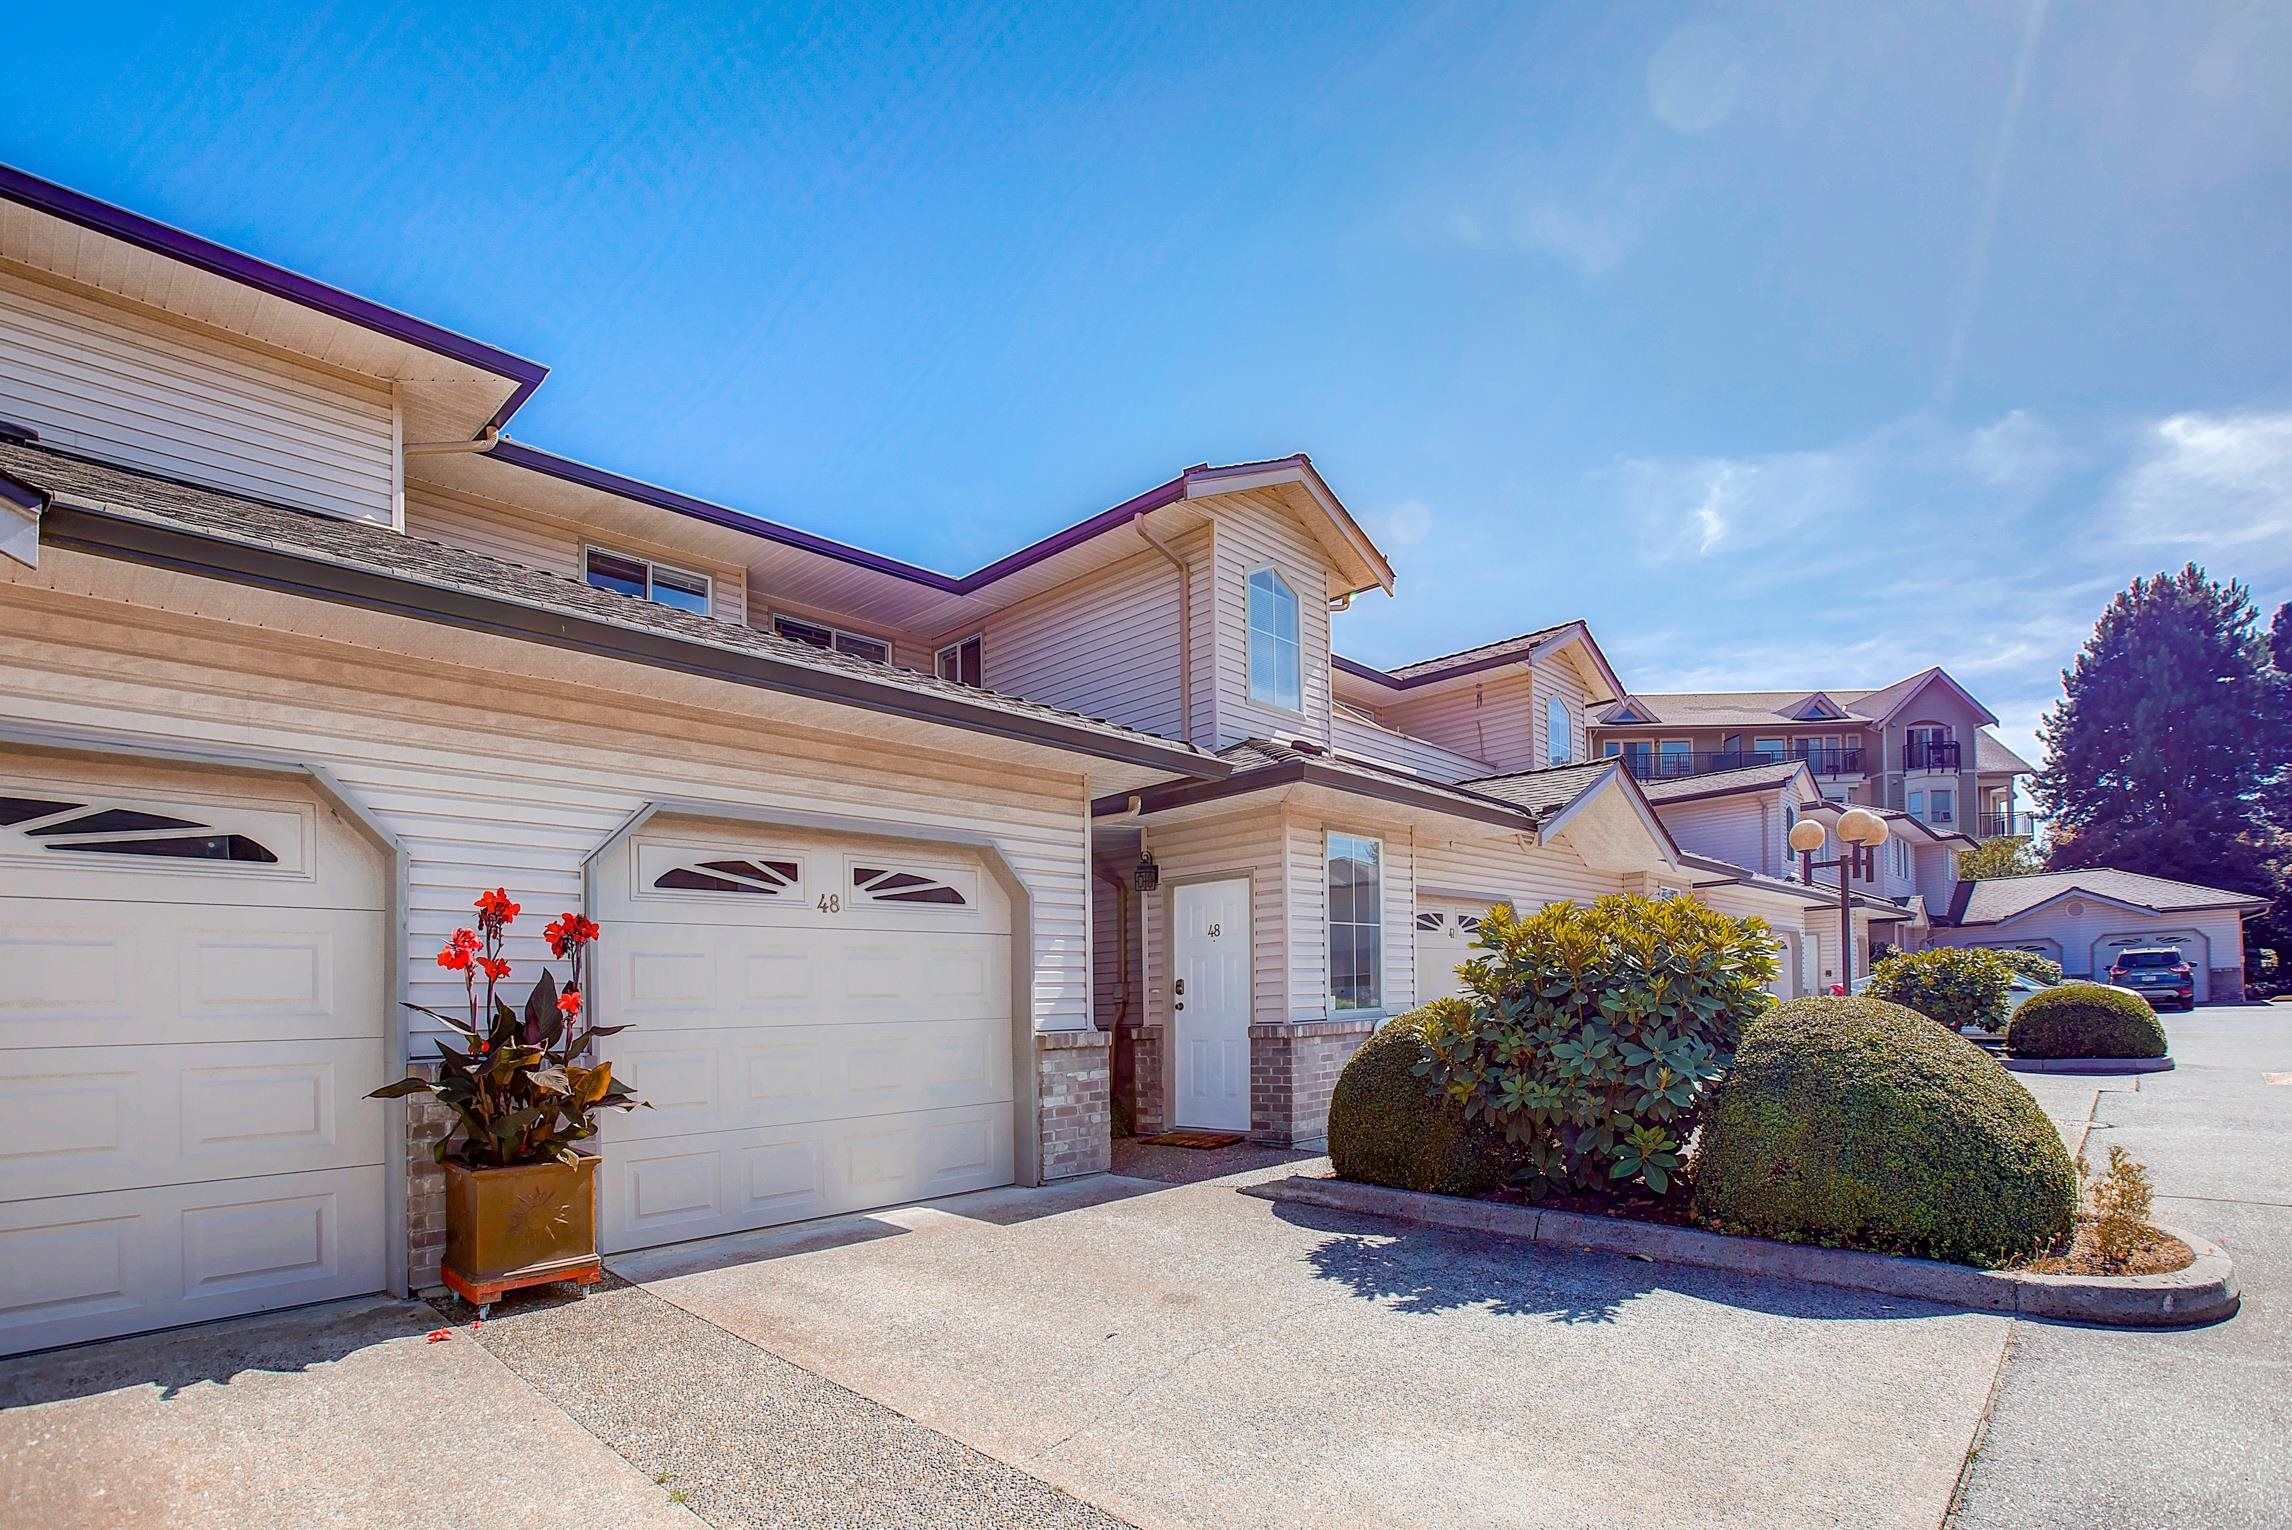 Main Photo: 48 19060 FORD ROAD in Pitt Meadows: Central Meadows Townhouse for sale : MLS®# R2611561